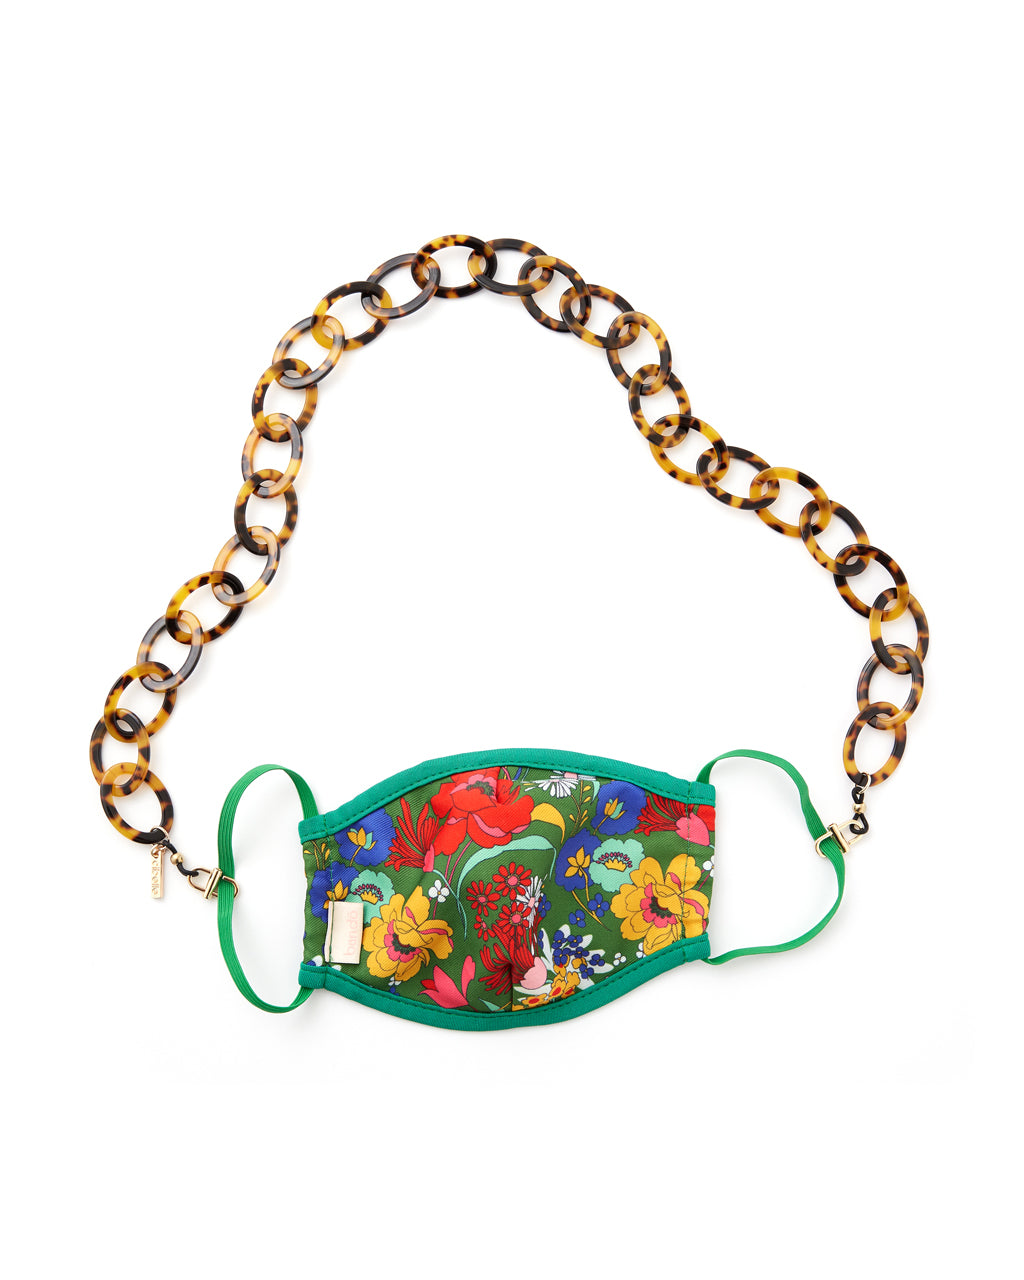 tort colored accessory chain shown on face mask